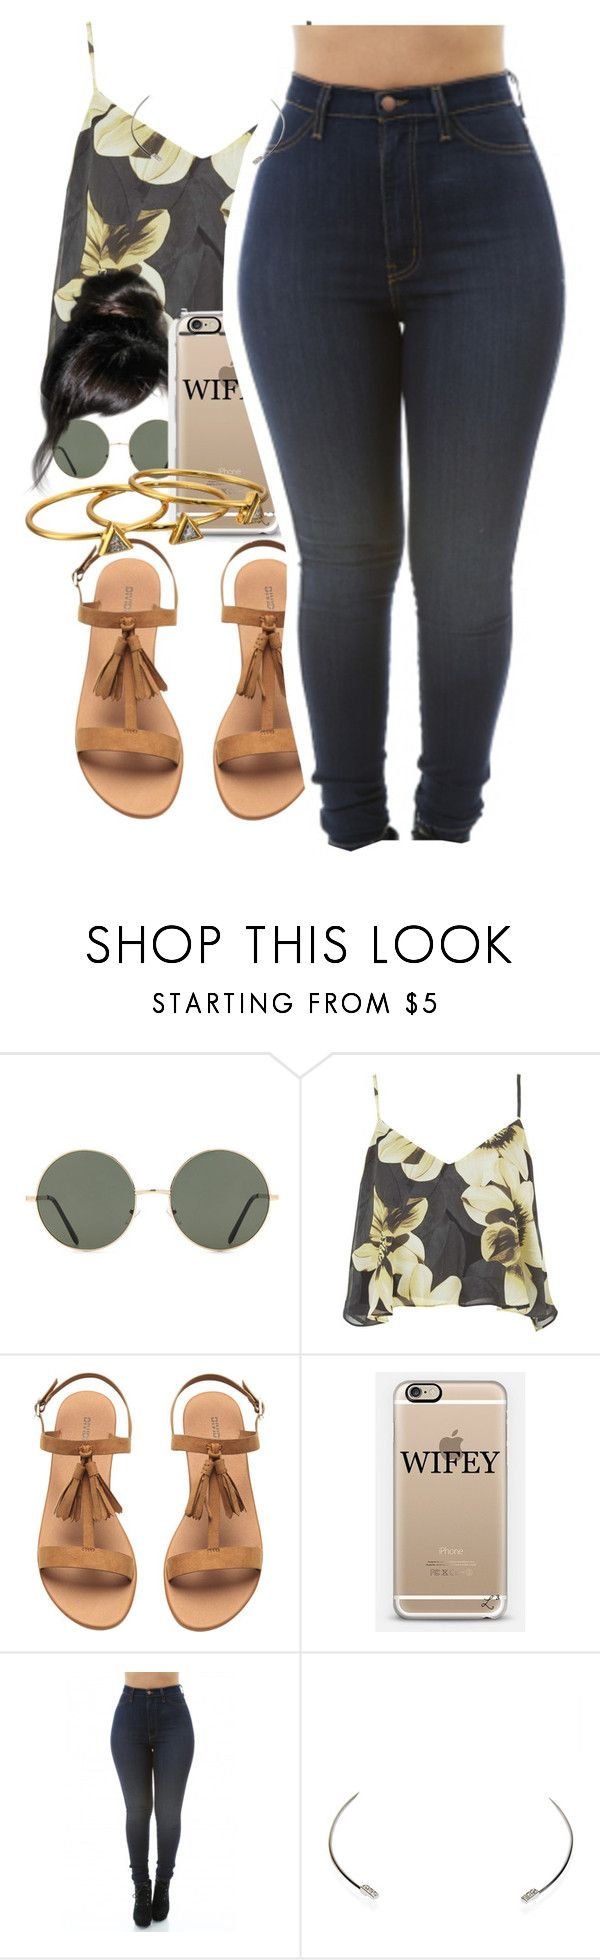 """""""k dot"""" by thaofficialtrillqueen ❤ liked on Polyvore featuring Forever 21, Topshop, Wet Seal and Gorjana"""